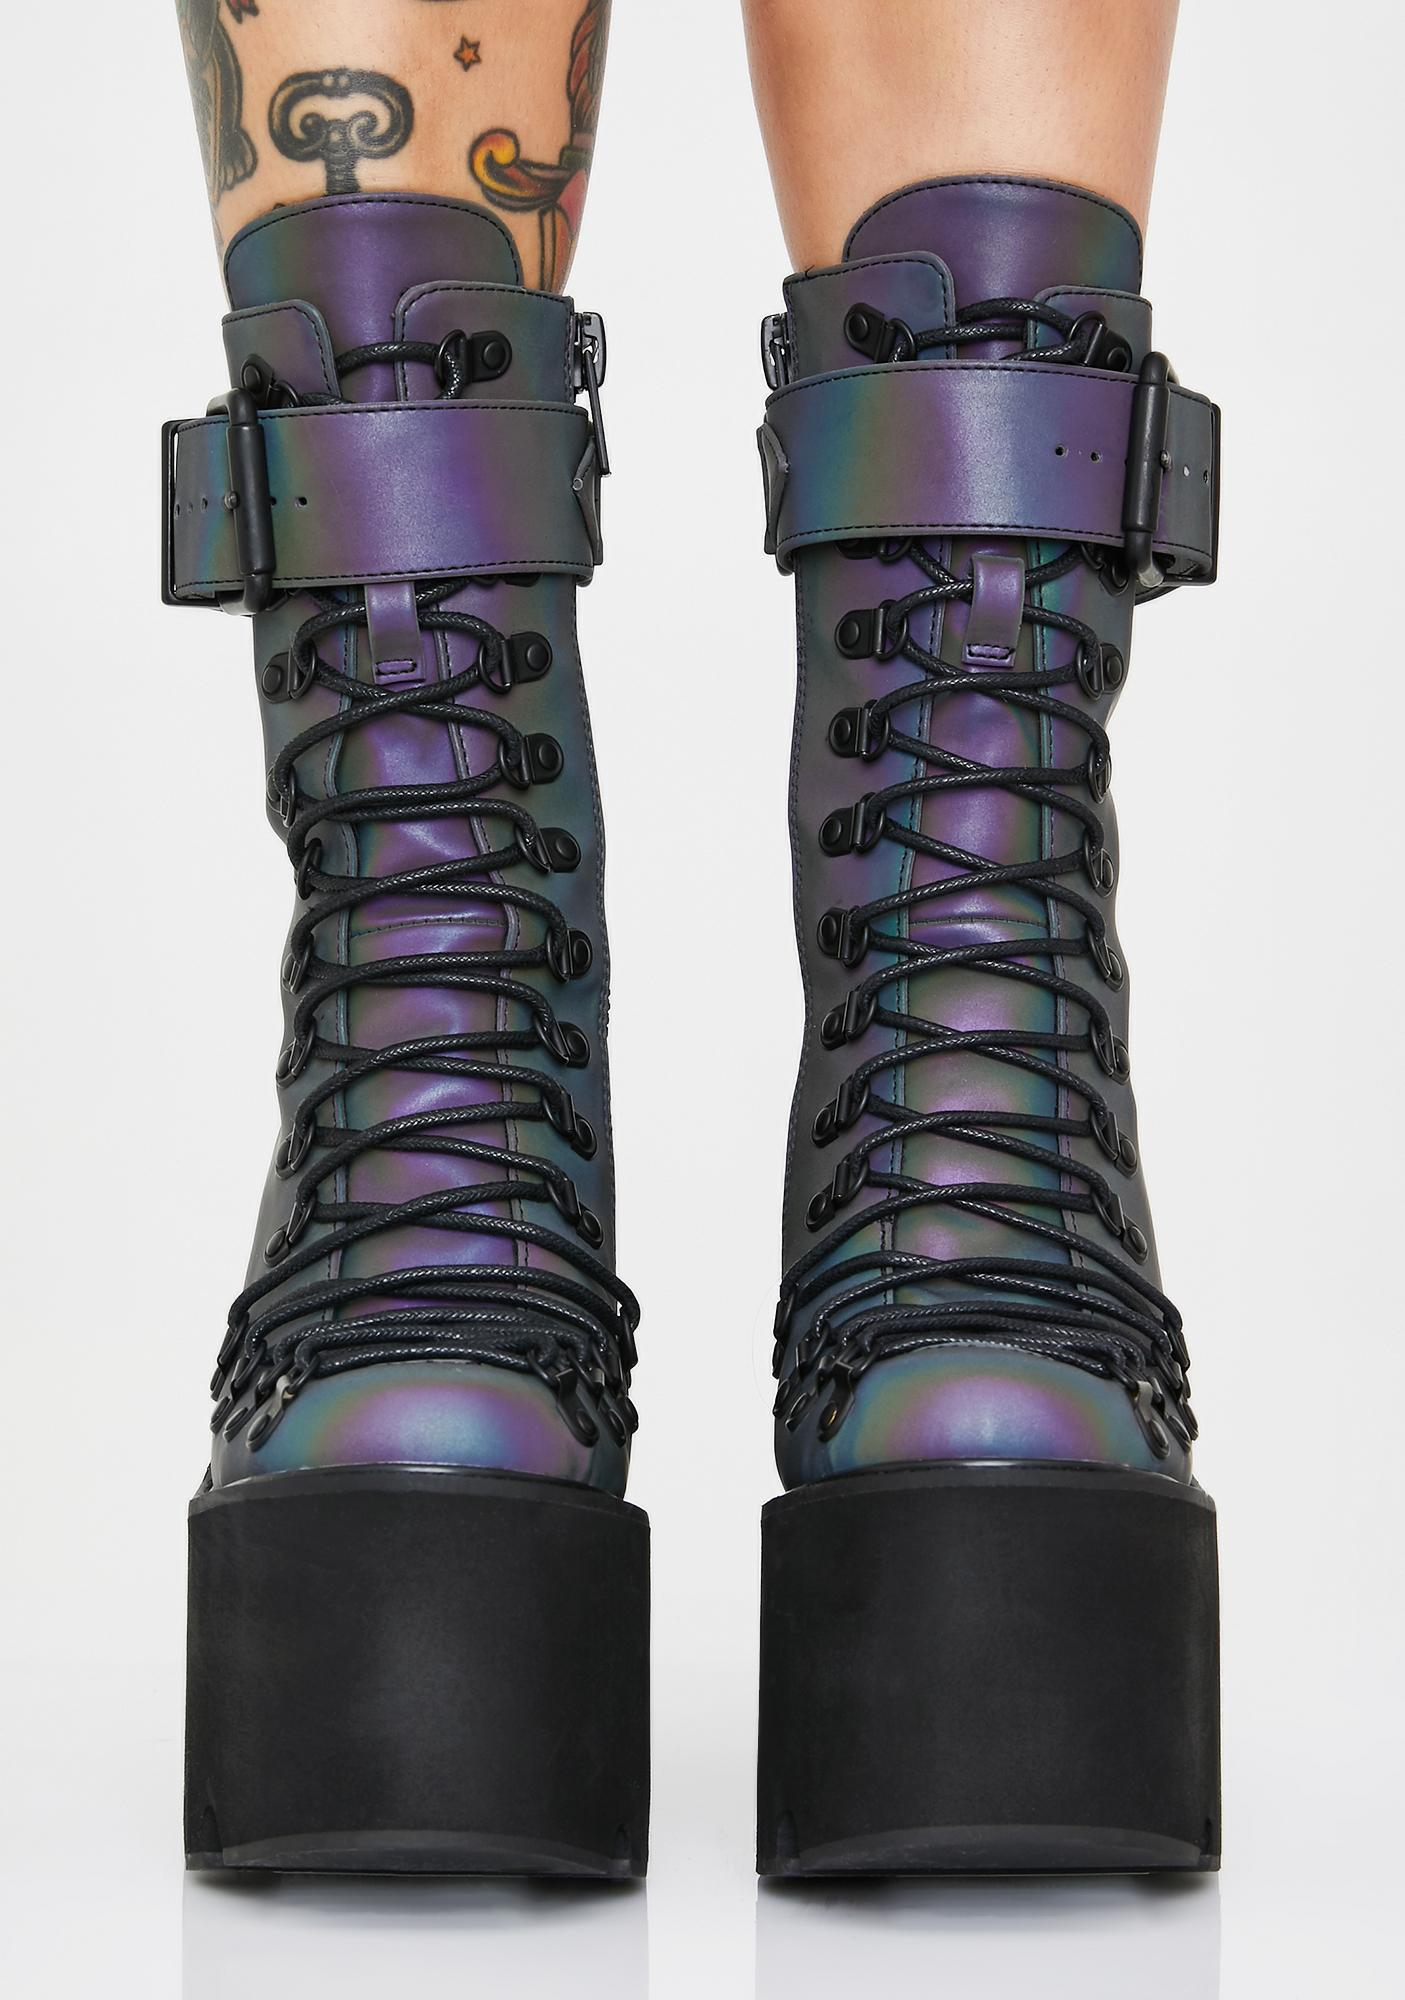 Club Exx Prism Reflective Traitor Boots